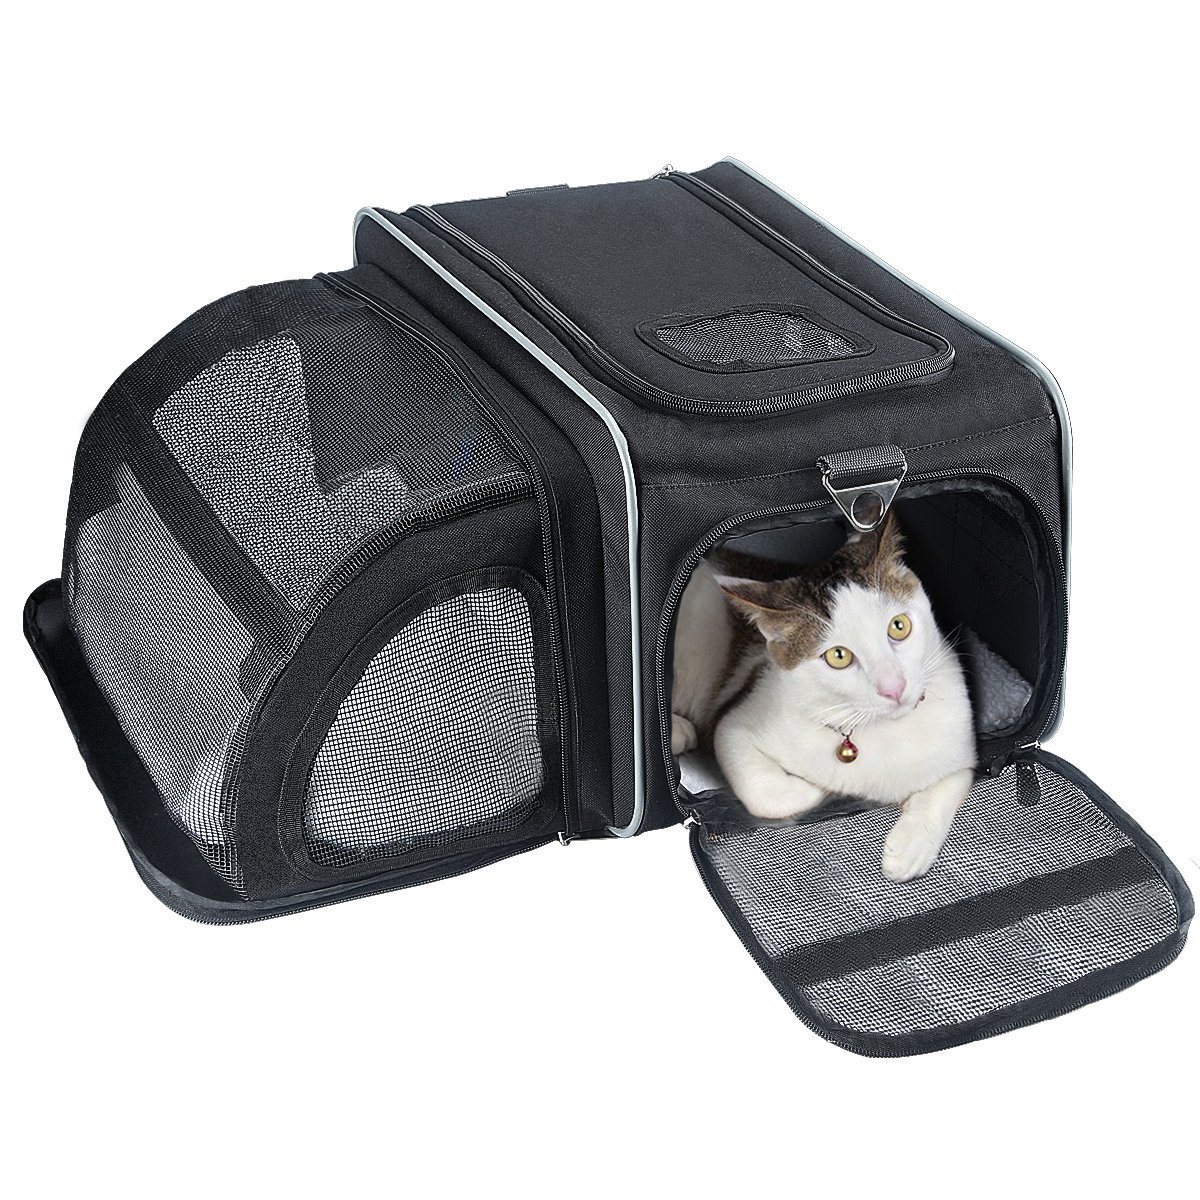 Cat Carrier, Fypo Soft Sided Airline Approved Pet Carriers Expandable Travel Foldable Cozy Bunny Crate with Removable Fleece Mat, Portable Handbag Kennel Travel Tote Zipper Lock Case for Airline Cabin